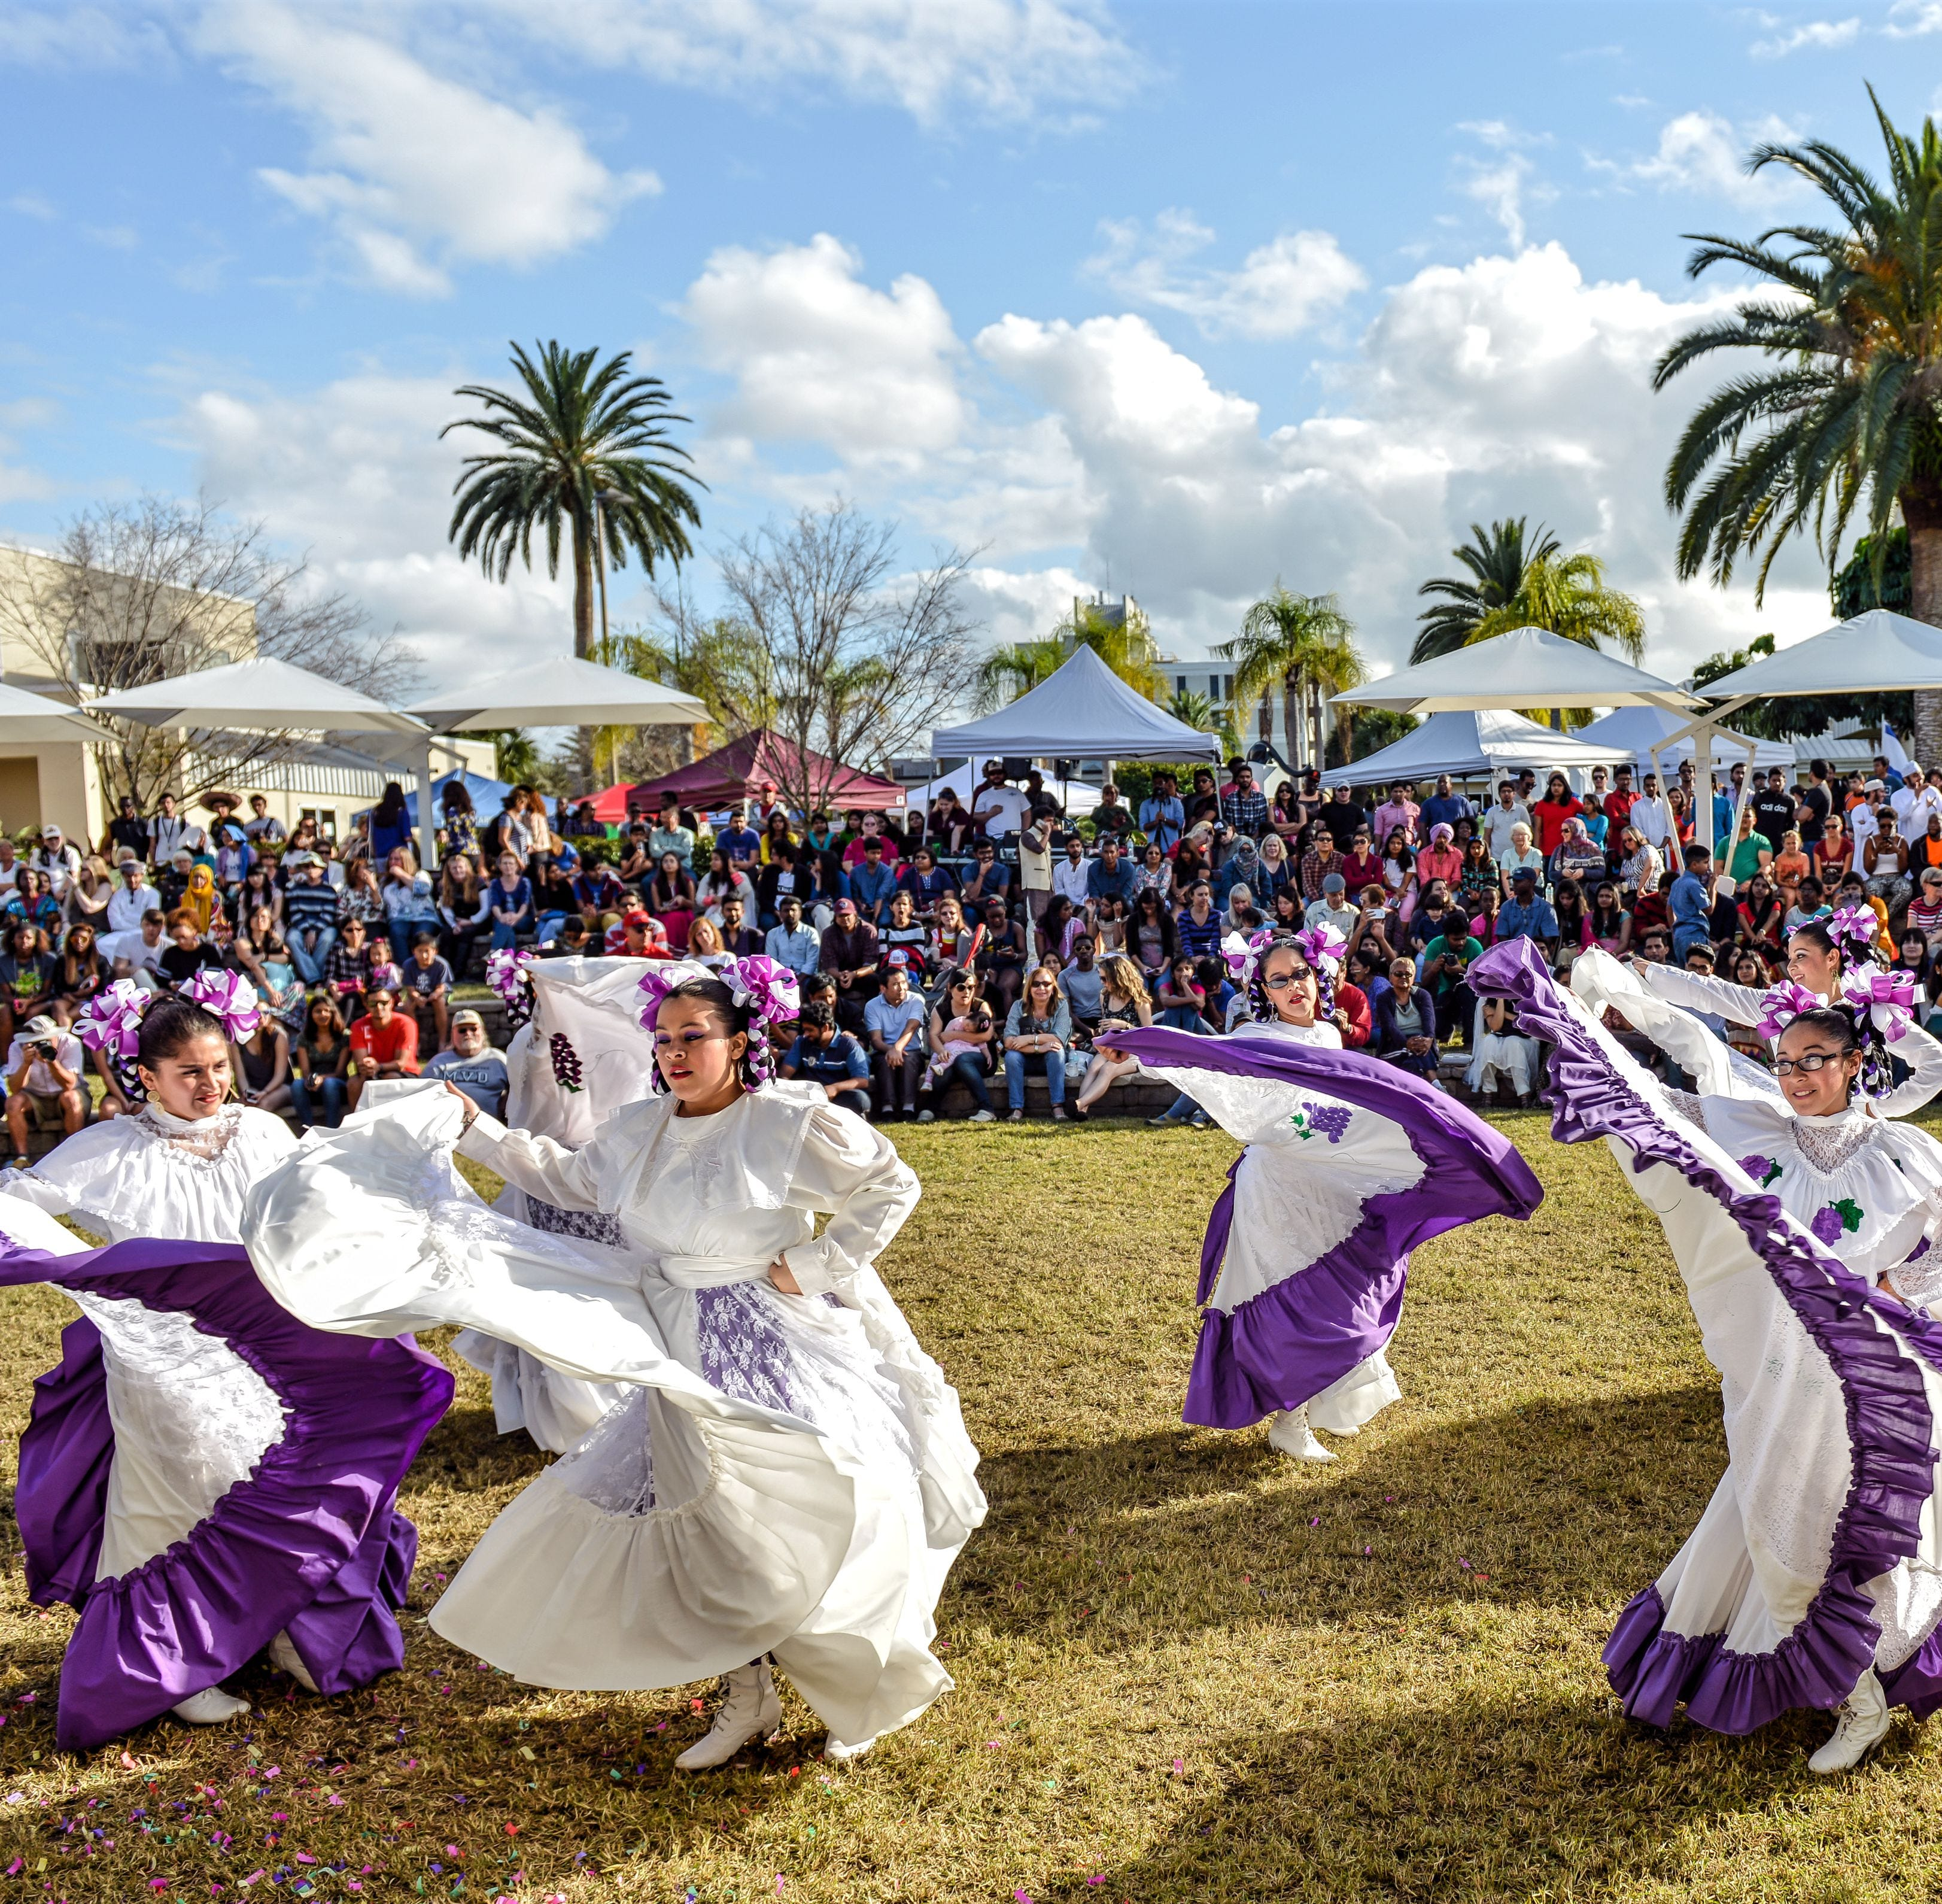 Take a trip around the world at Florida Tech's International Festival